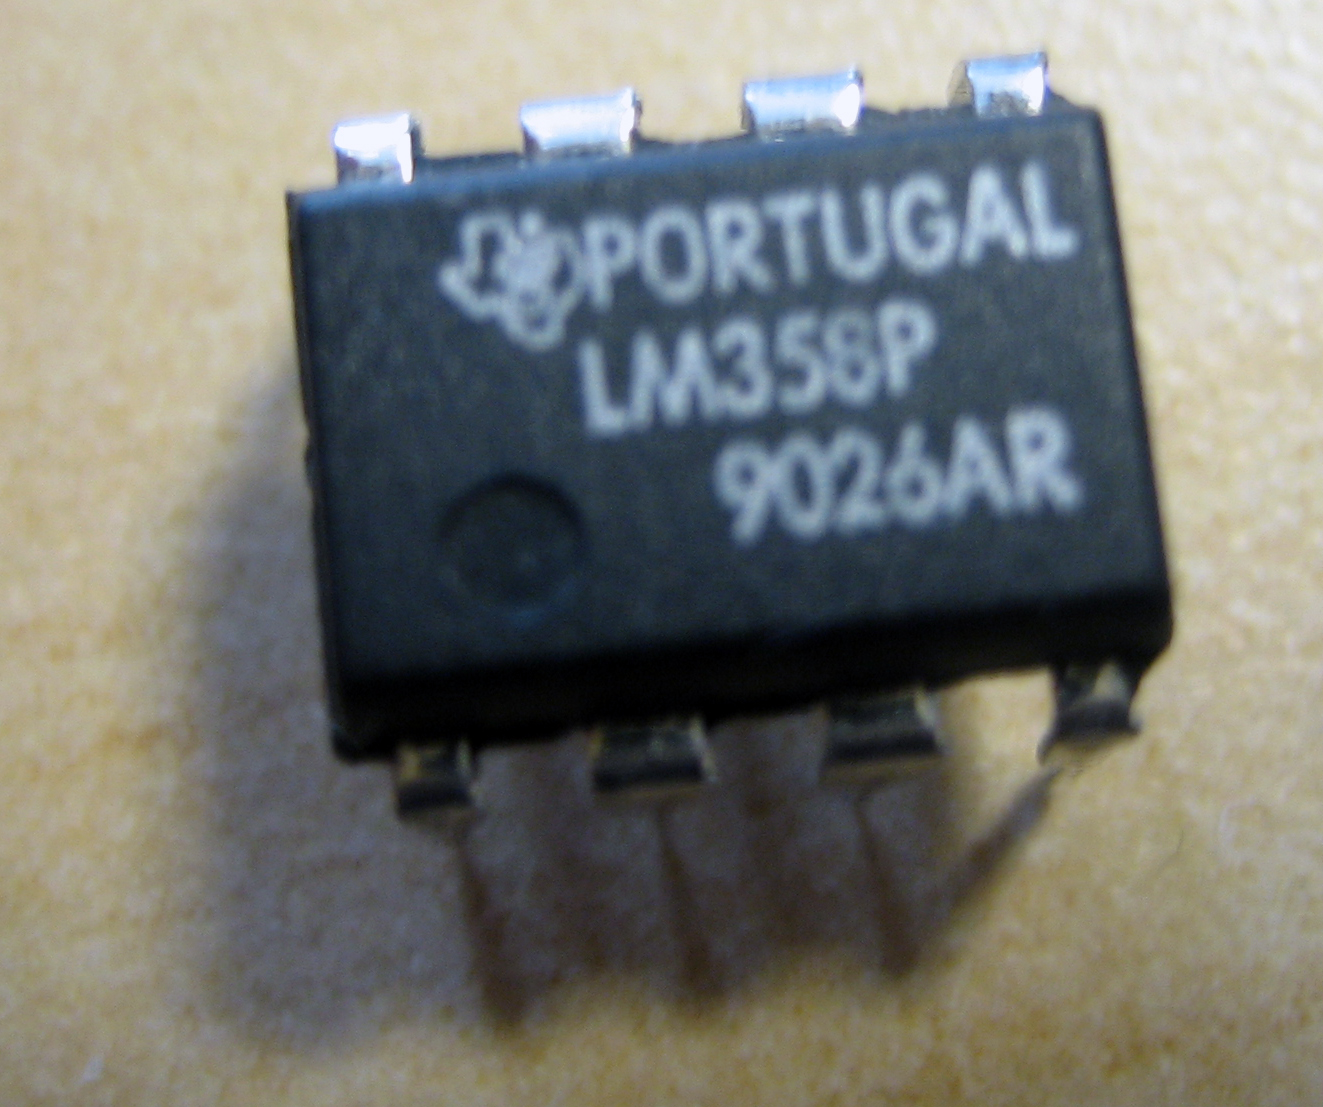 Operational Amplifier Fileac Voltage Detector Equivilant Circuitjpg Wikimedia Commons Lm356